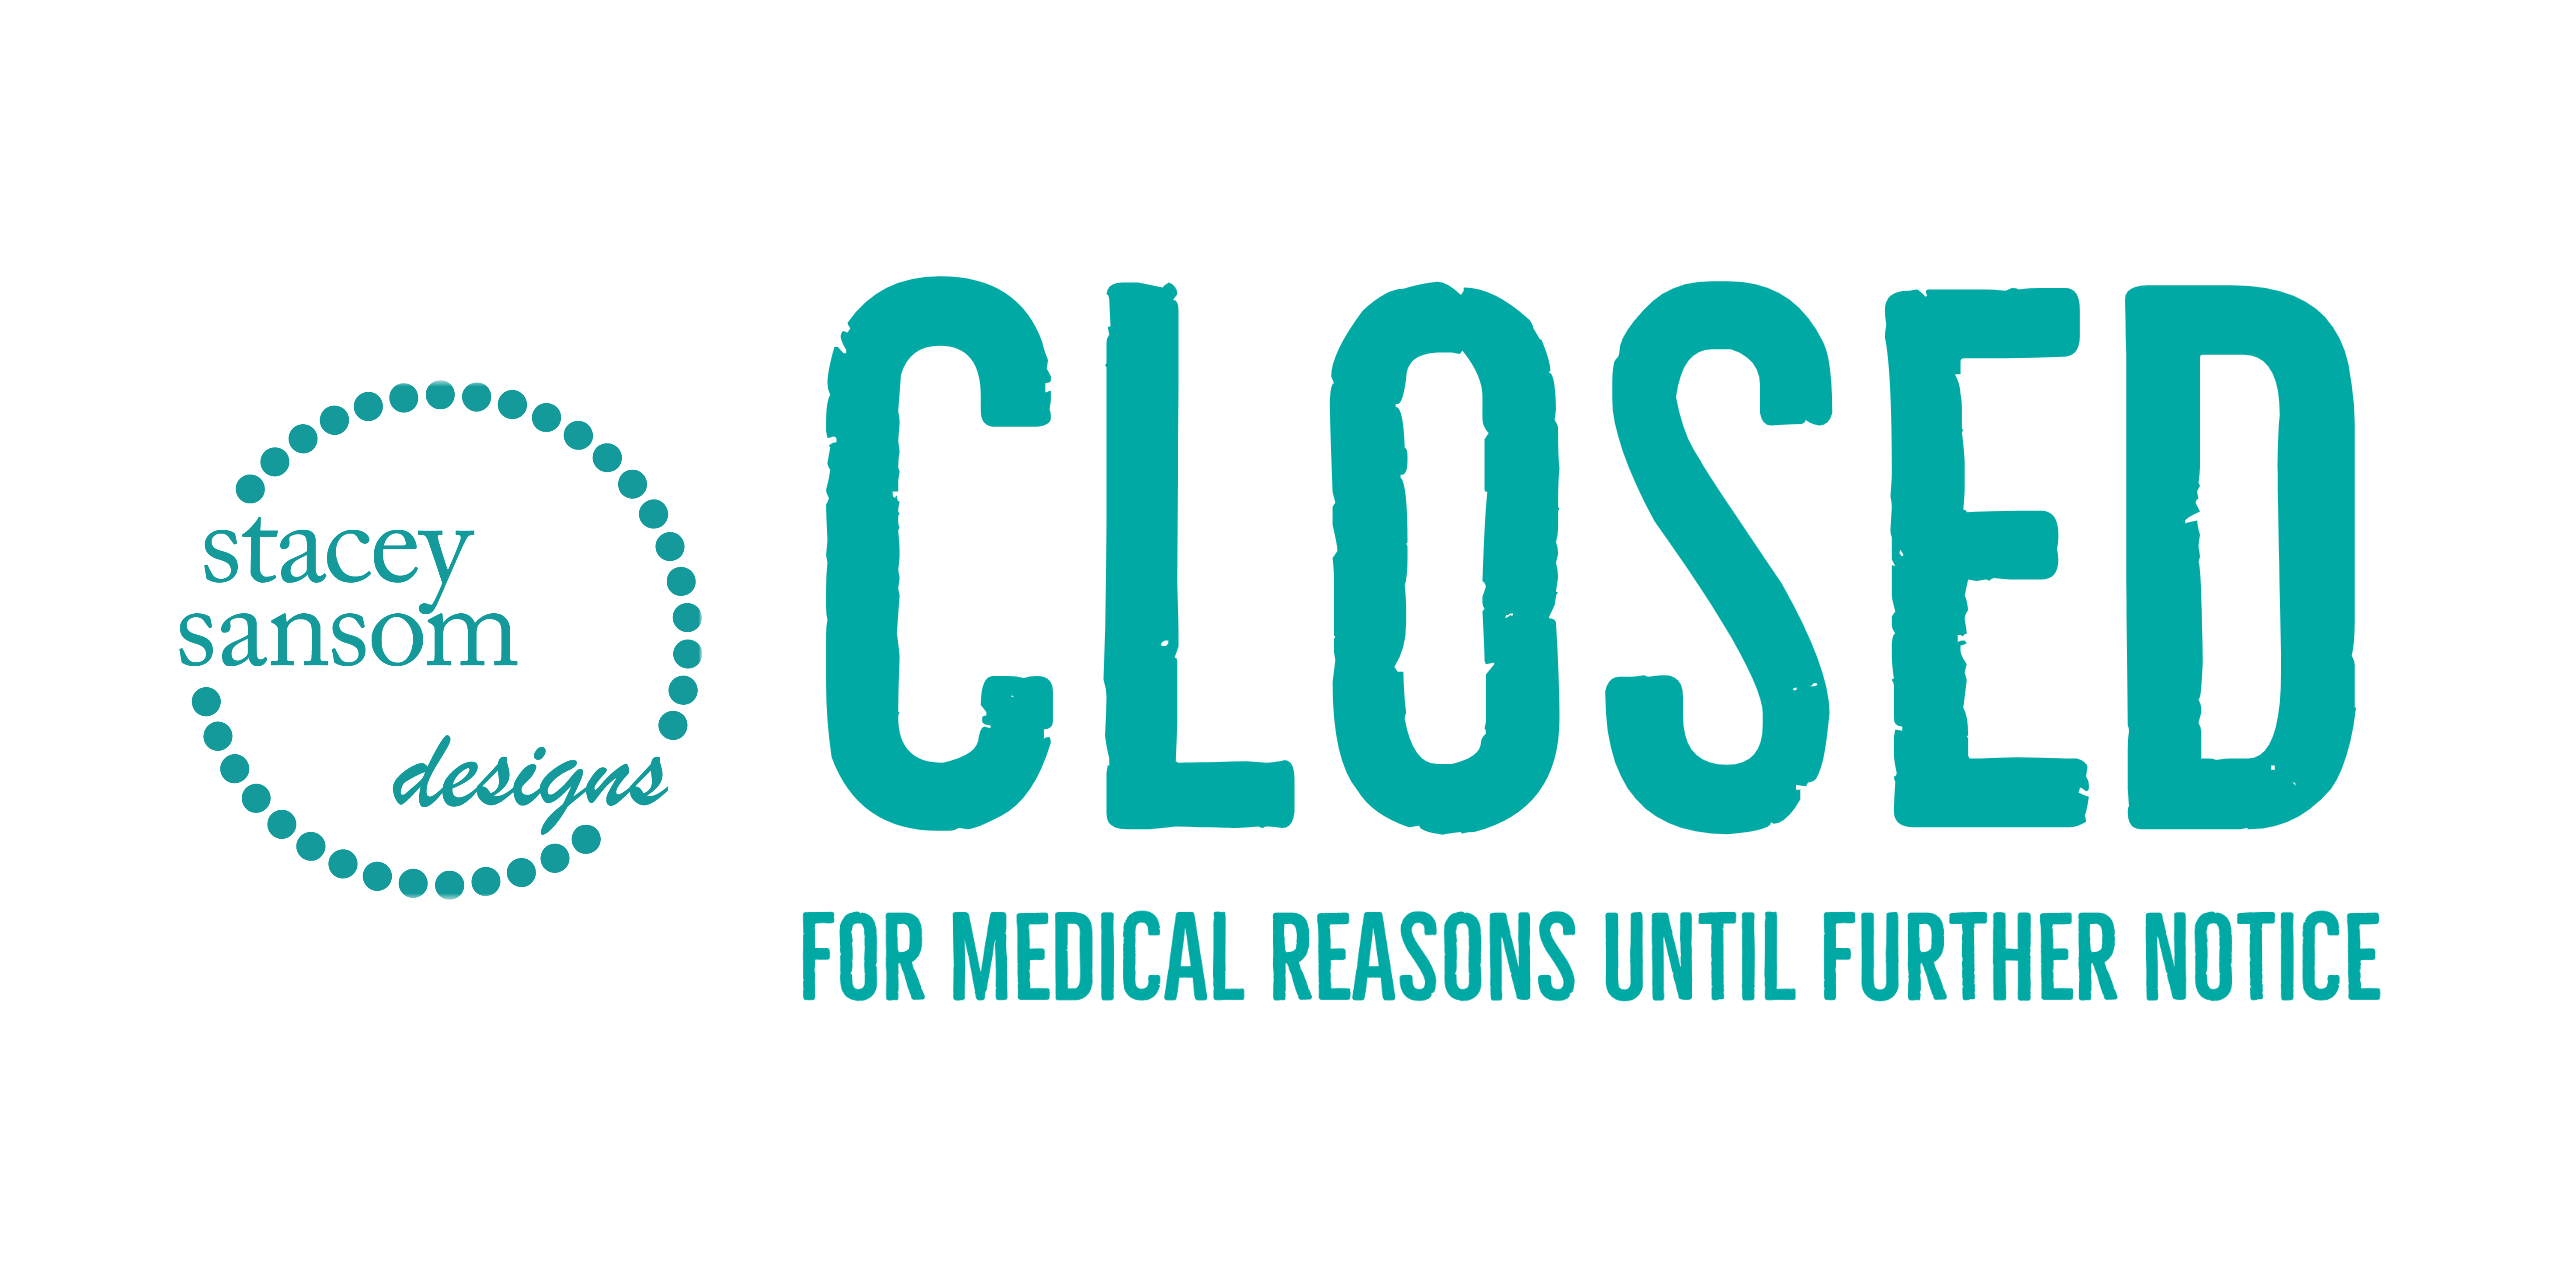 Temporarily Closed due to medical reasons until further notice   Stacey Sansom Designs